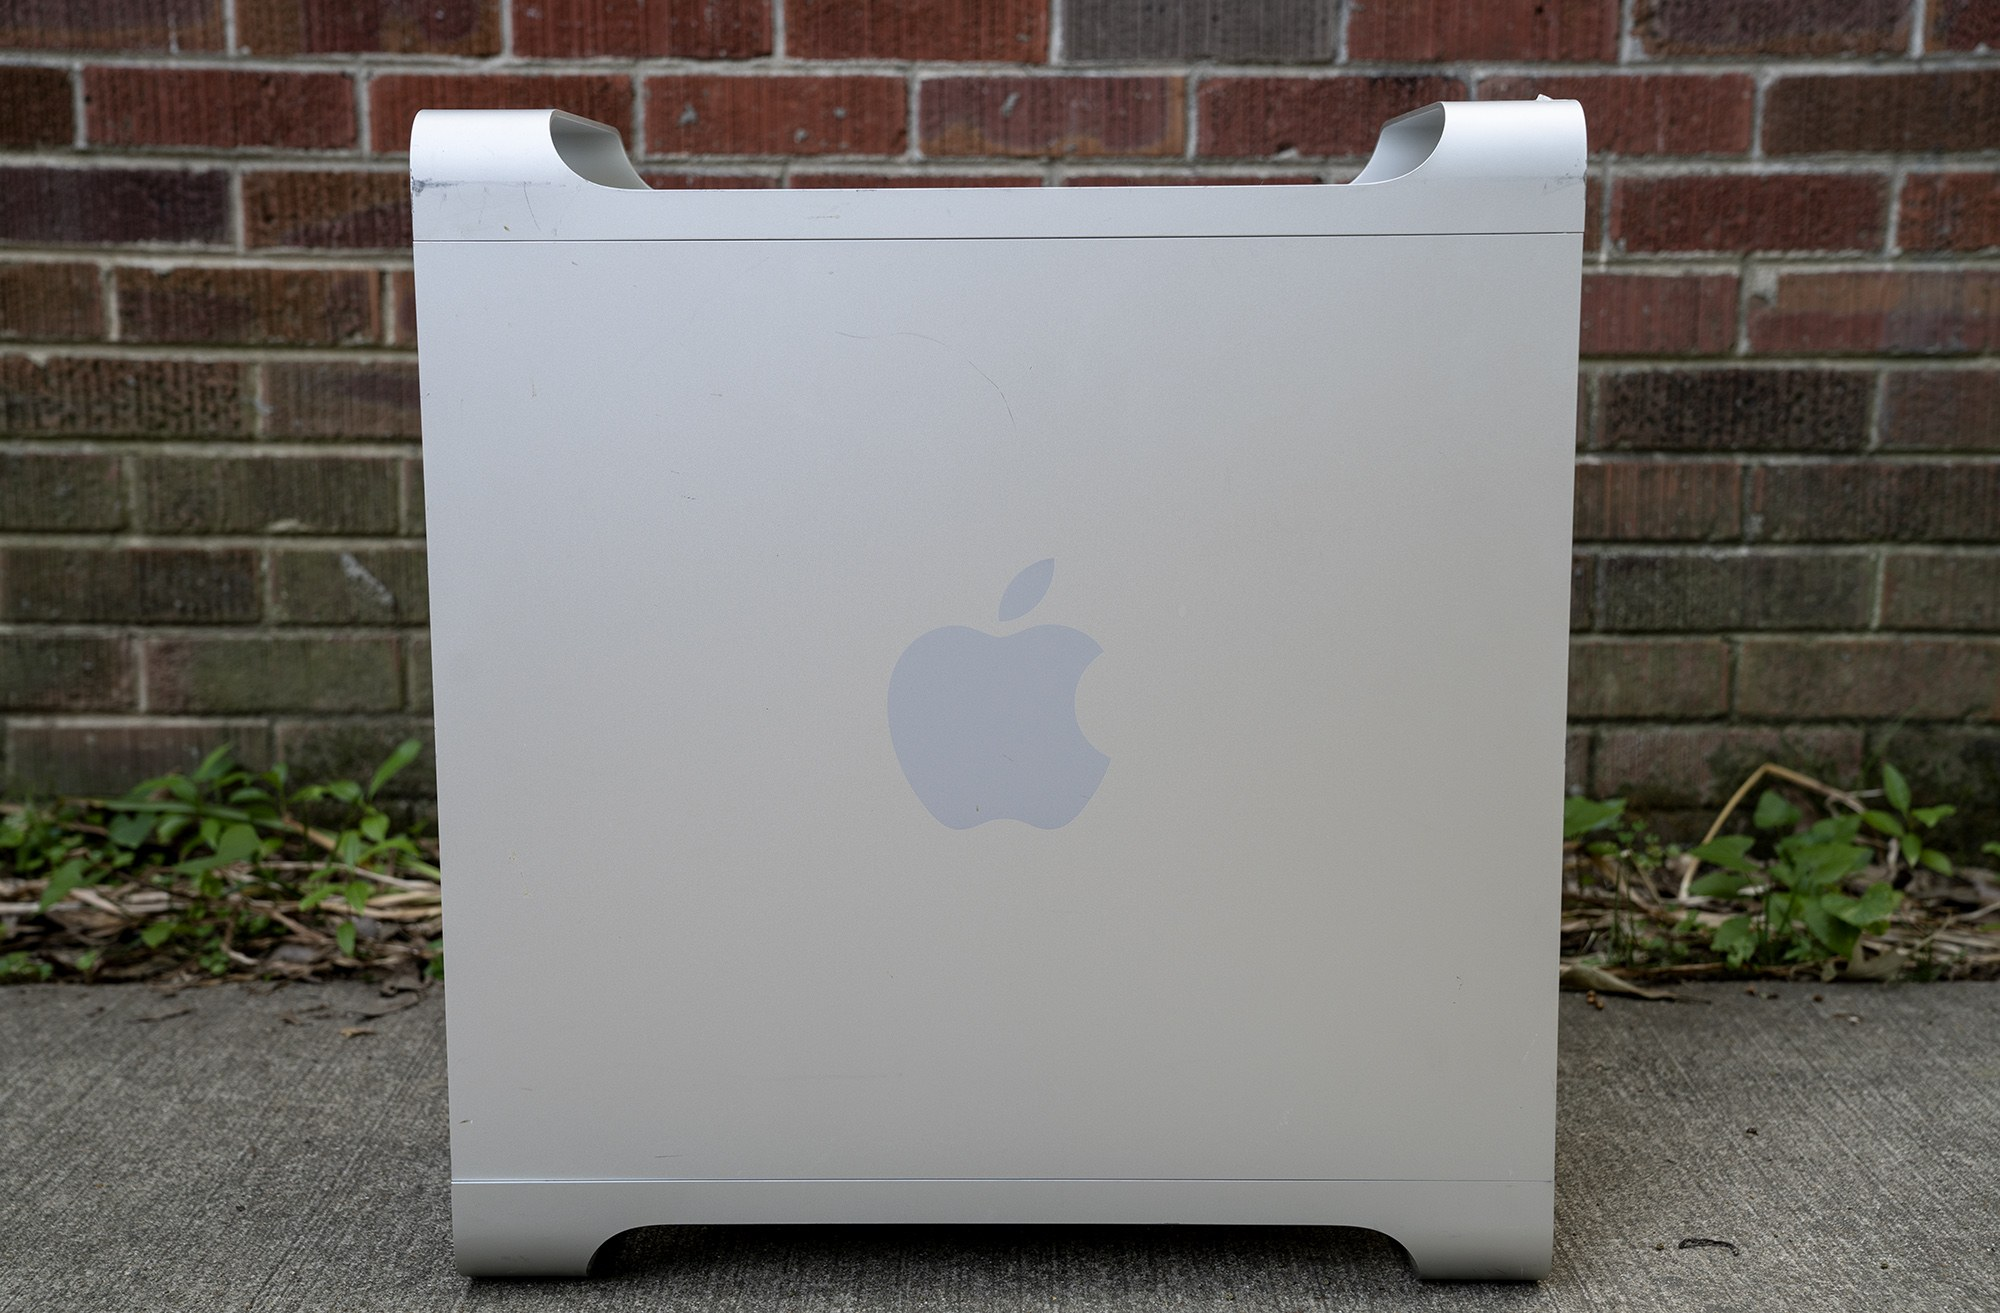 The Mighty Power Mac G5 MacStories